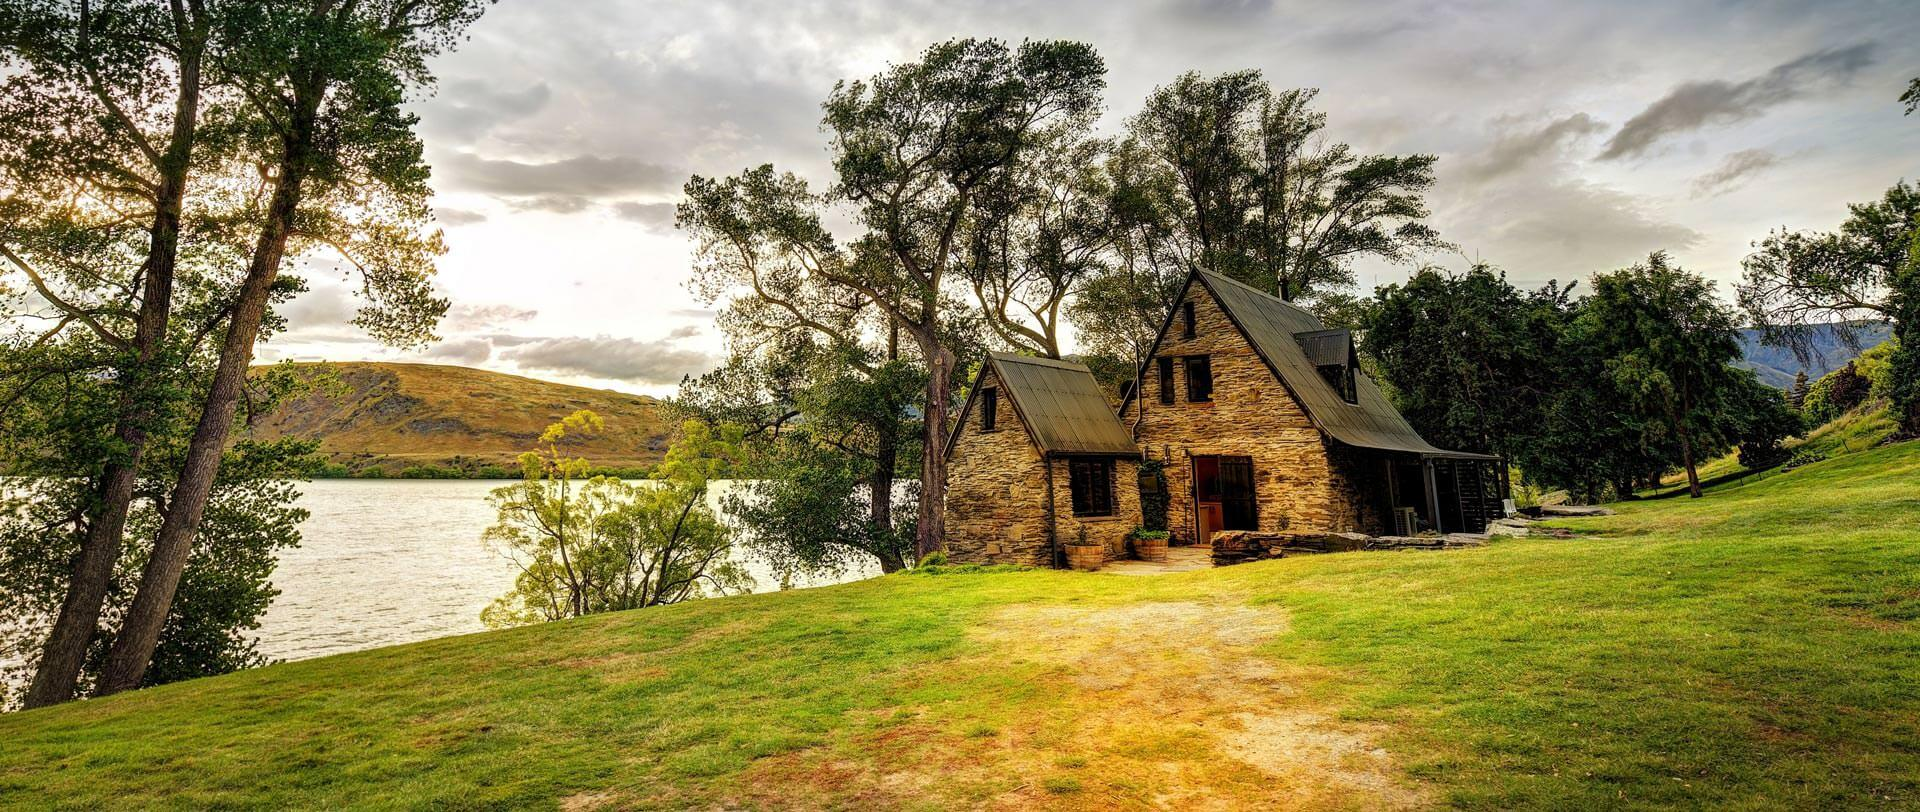 tourism_country_cottage